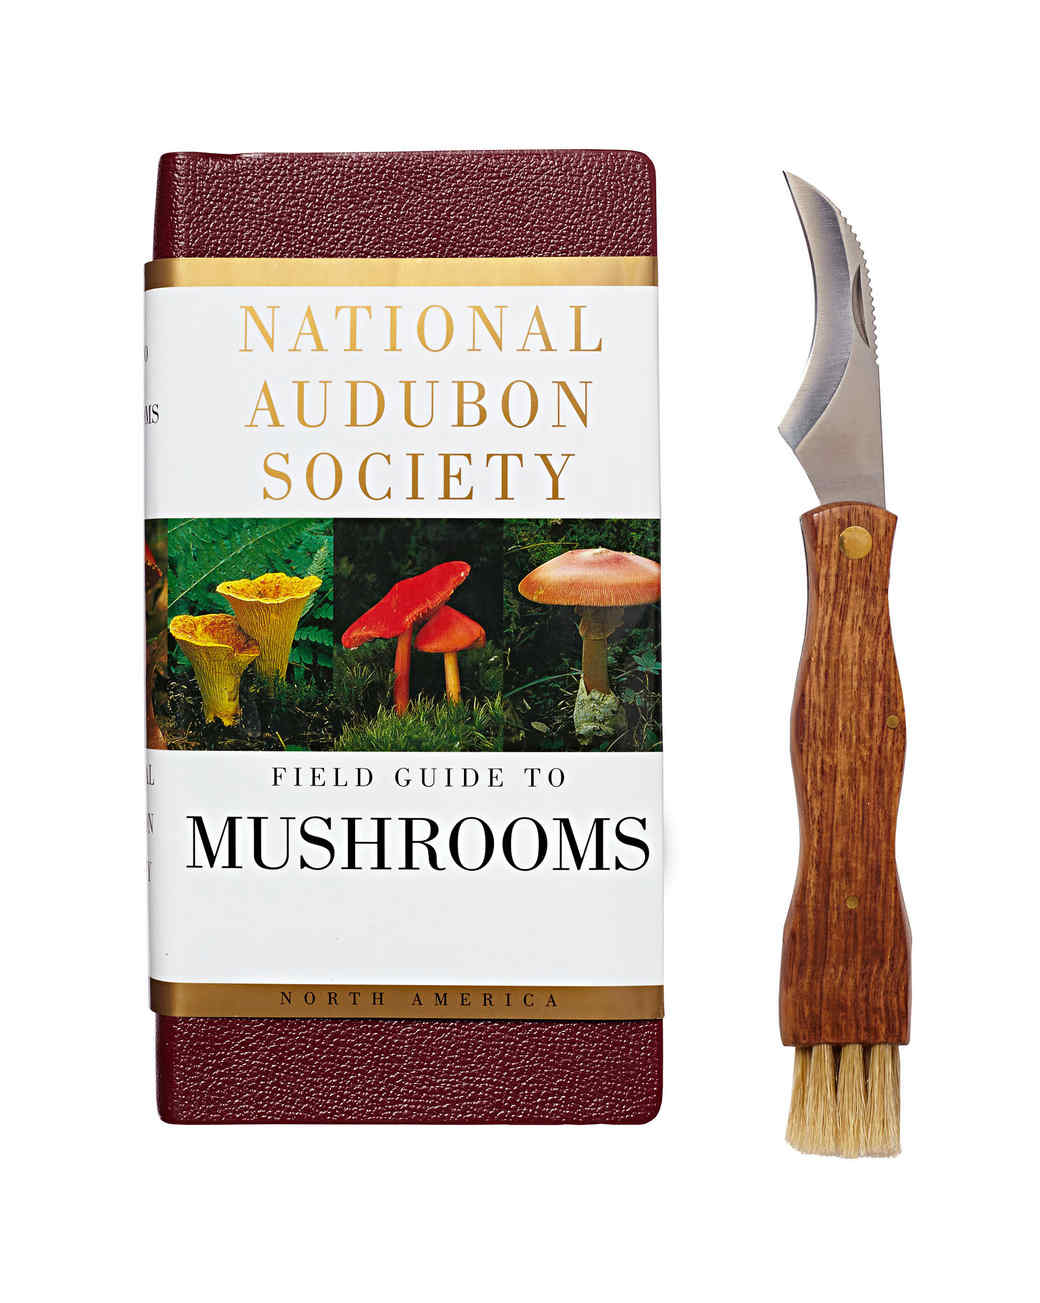 national audubon society mushroom guide